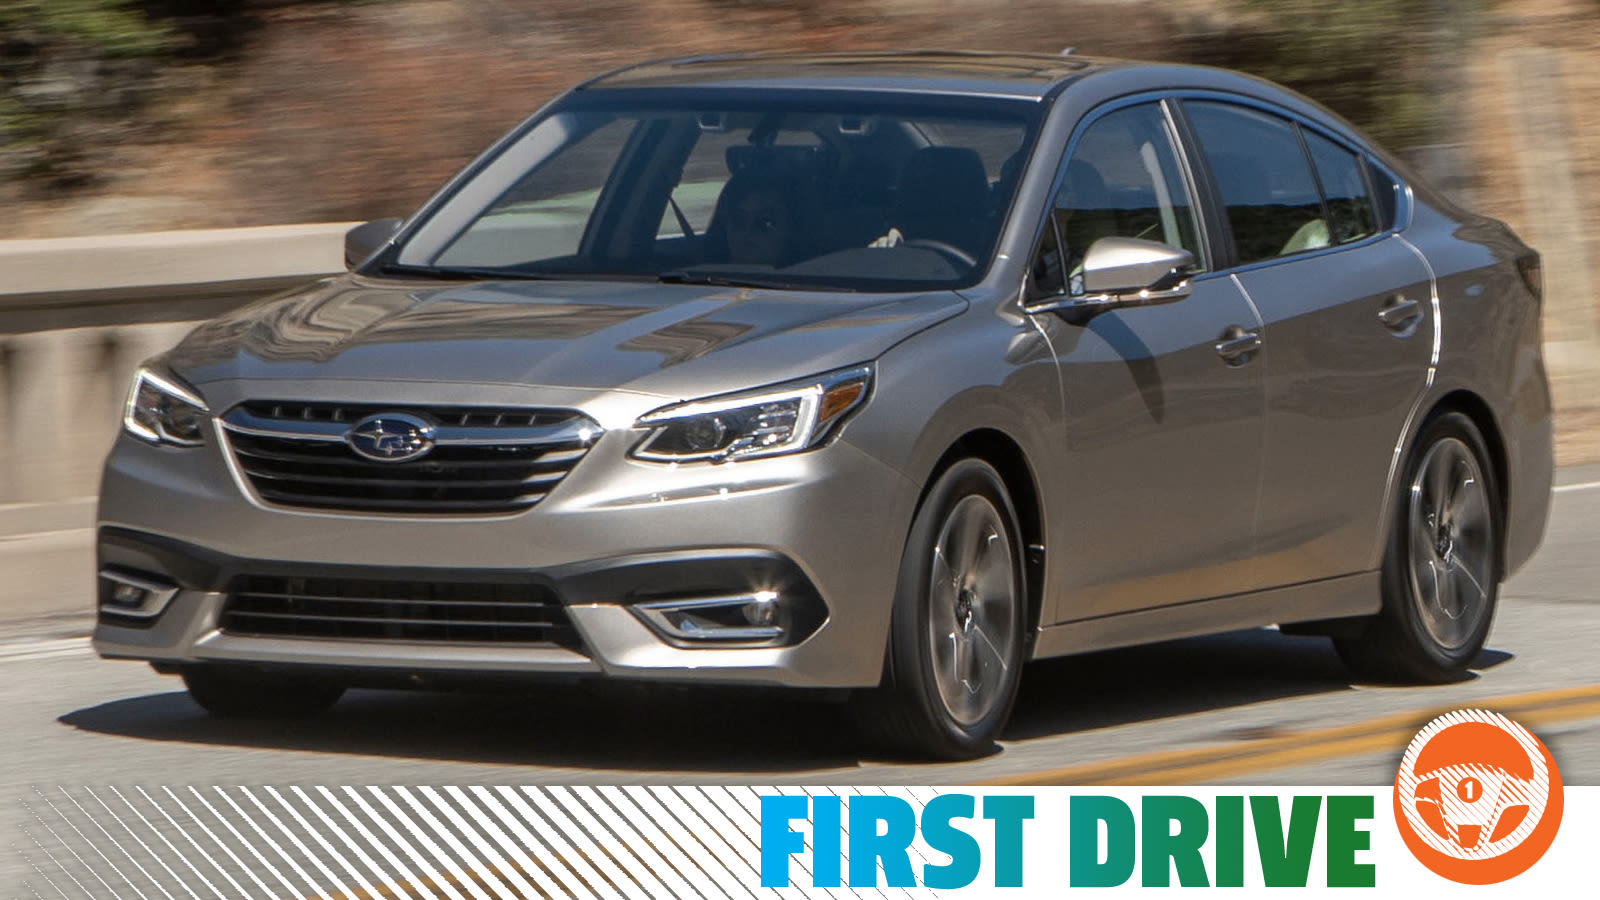 55 All New The Subaru Legacy Gt 2019 Performance Research New